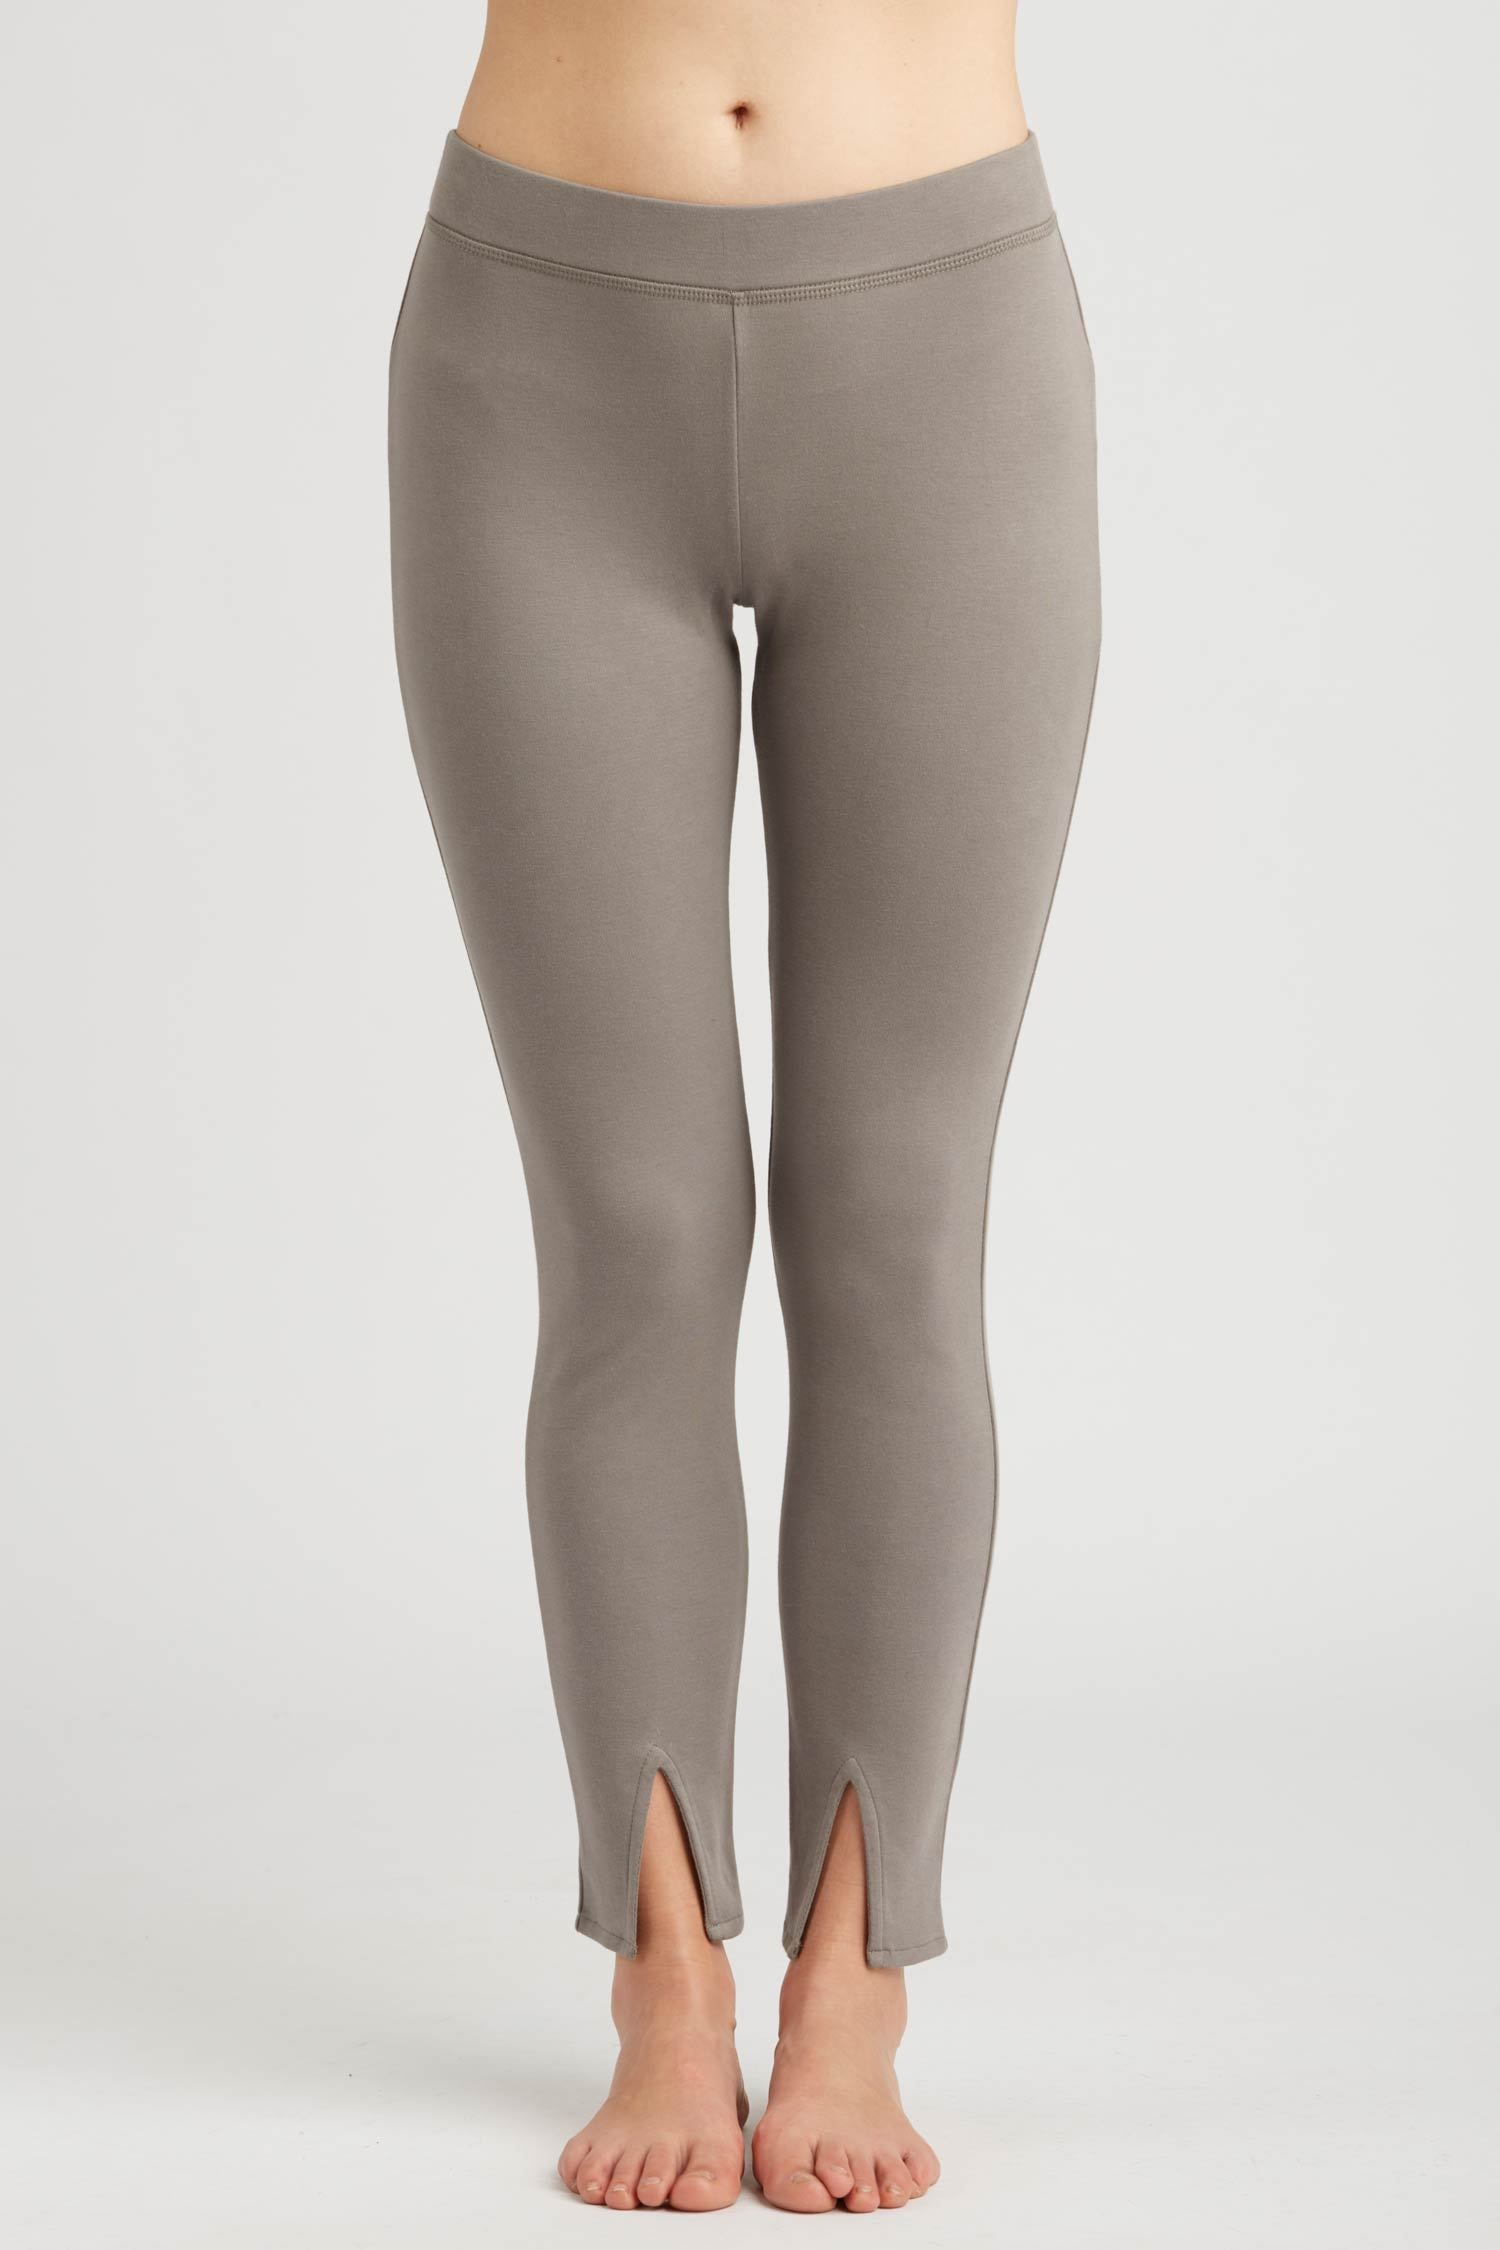 Womens Leggings Gray | Ankle Slit Pant | Organic Cotton Clothing